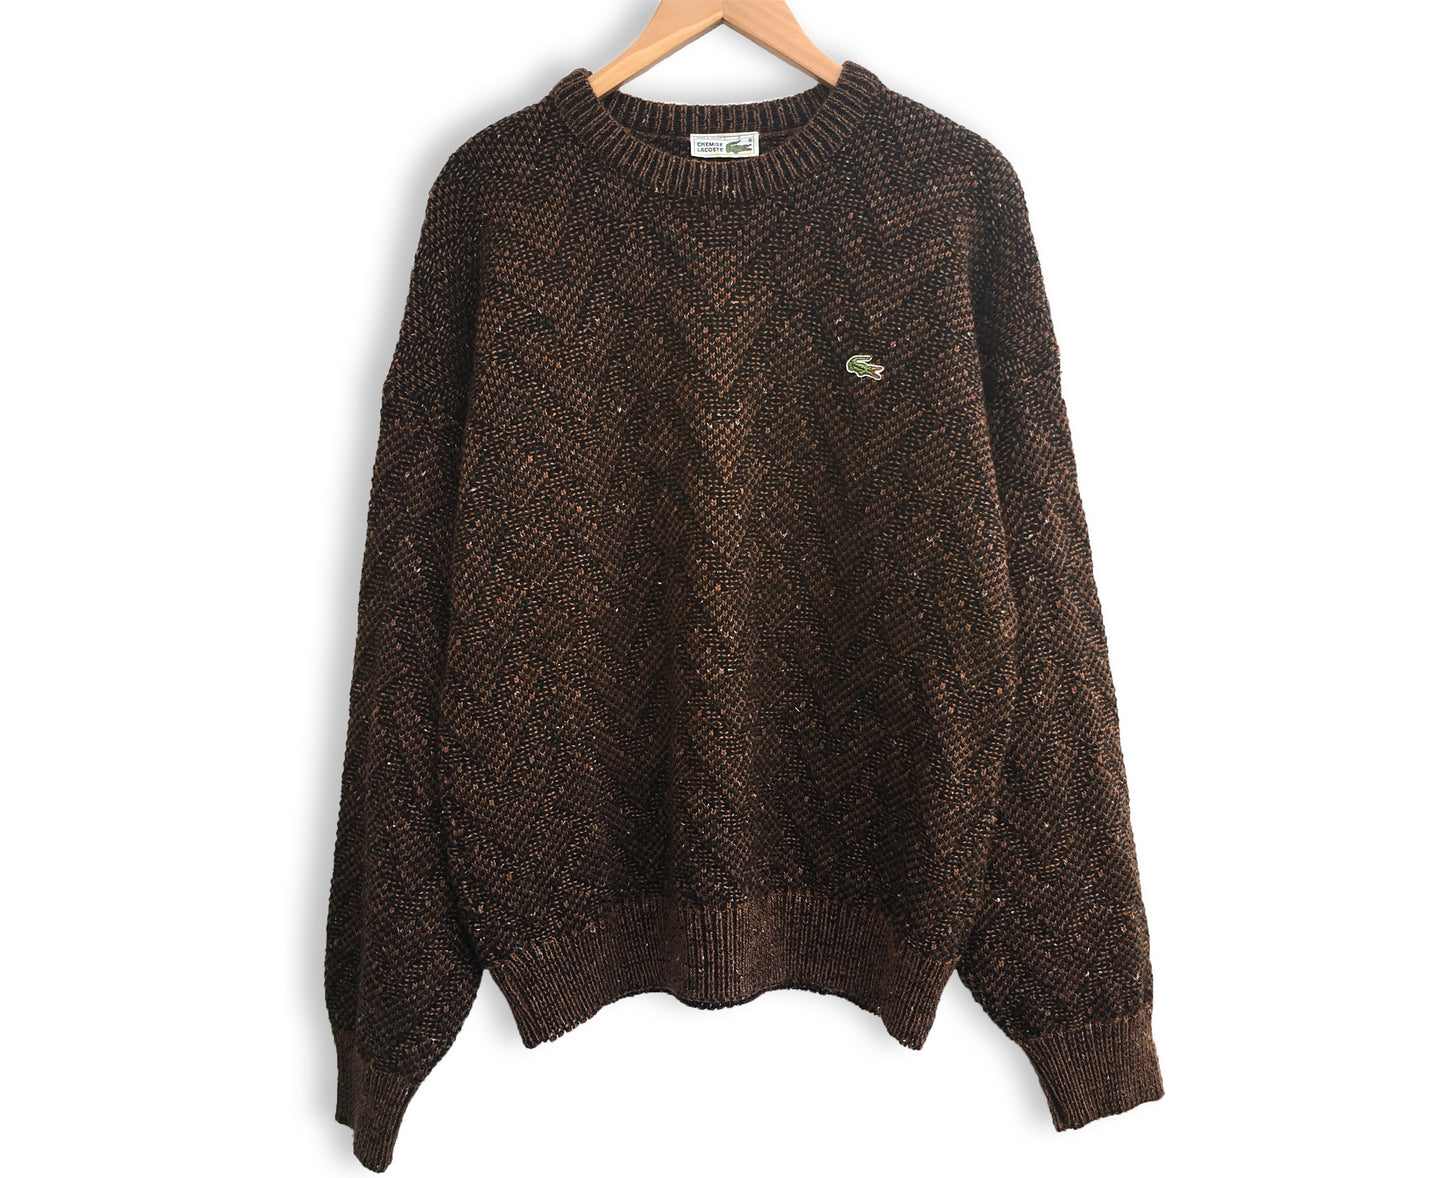 Vintage Lacoste Brown Sweater